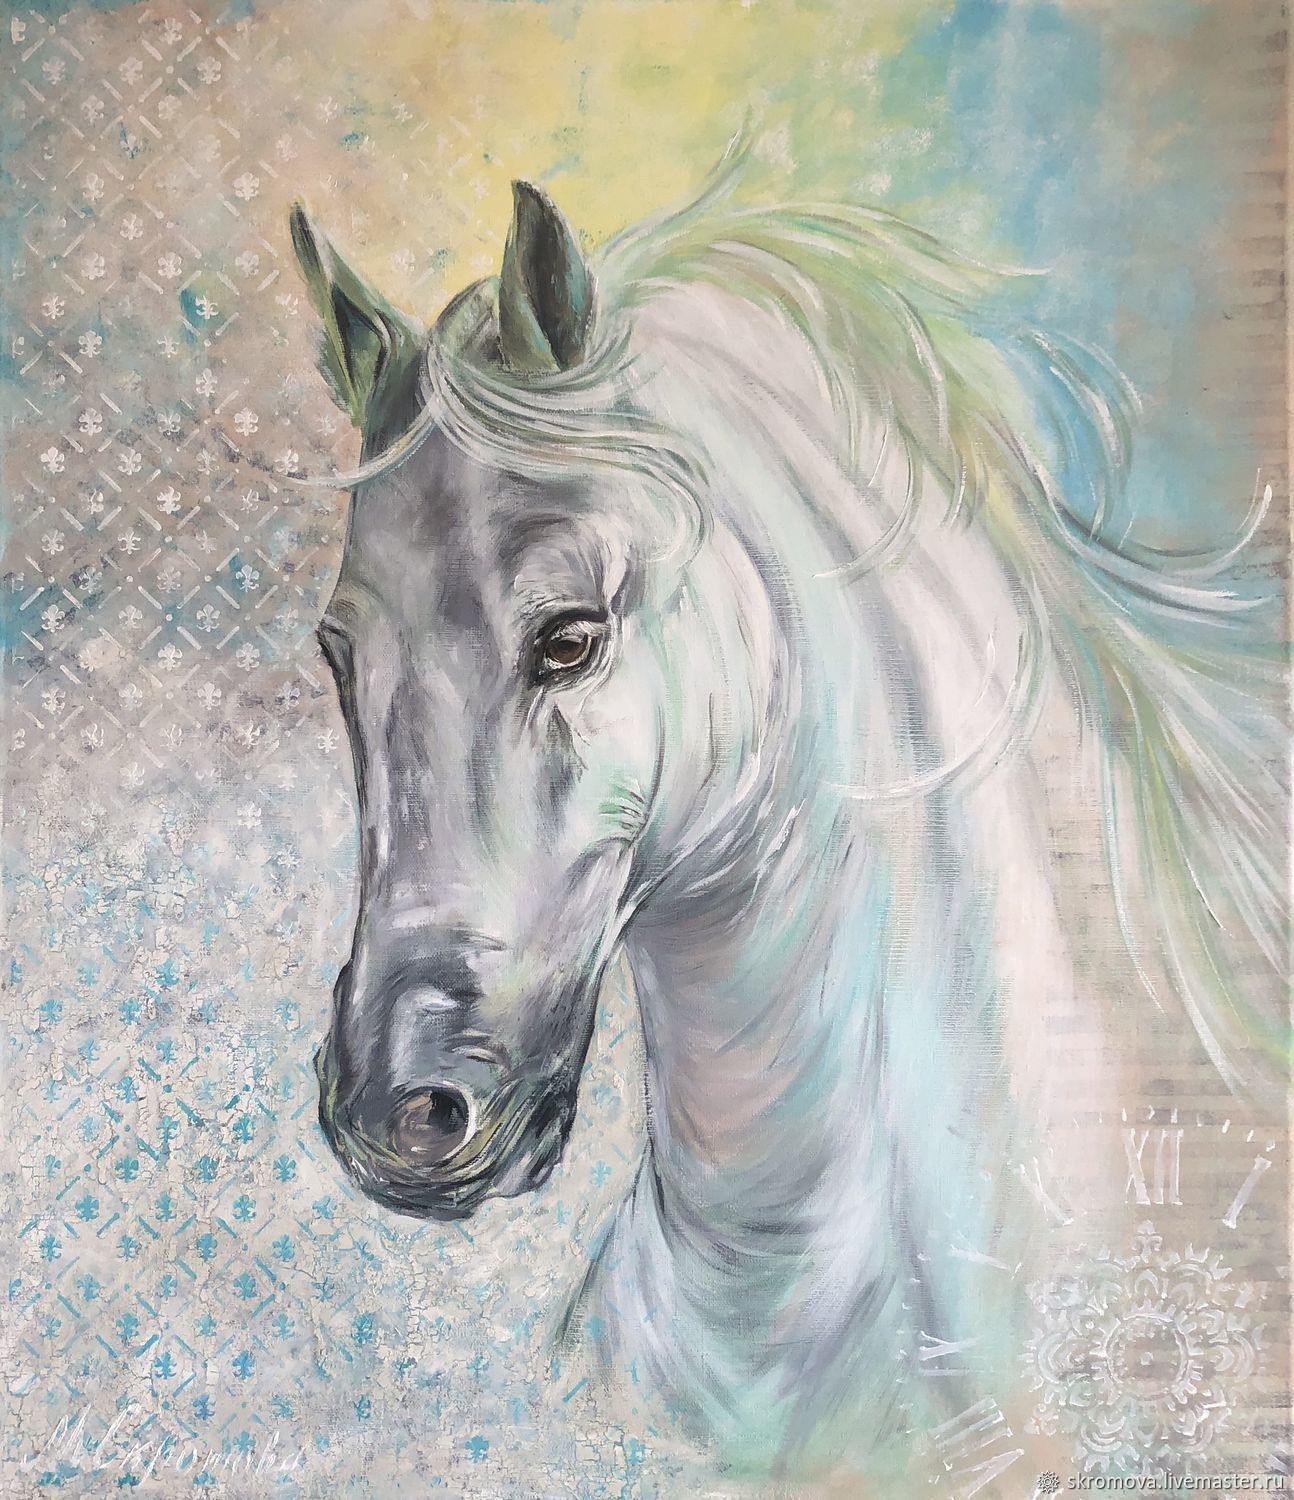 Oil Painting With A Horse Painting With A White Horse Kupit Na Yarmarke Masterov Mdc82com Kartiny Moscow